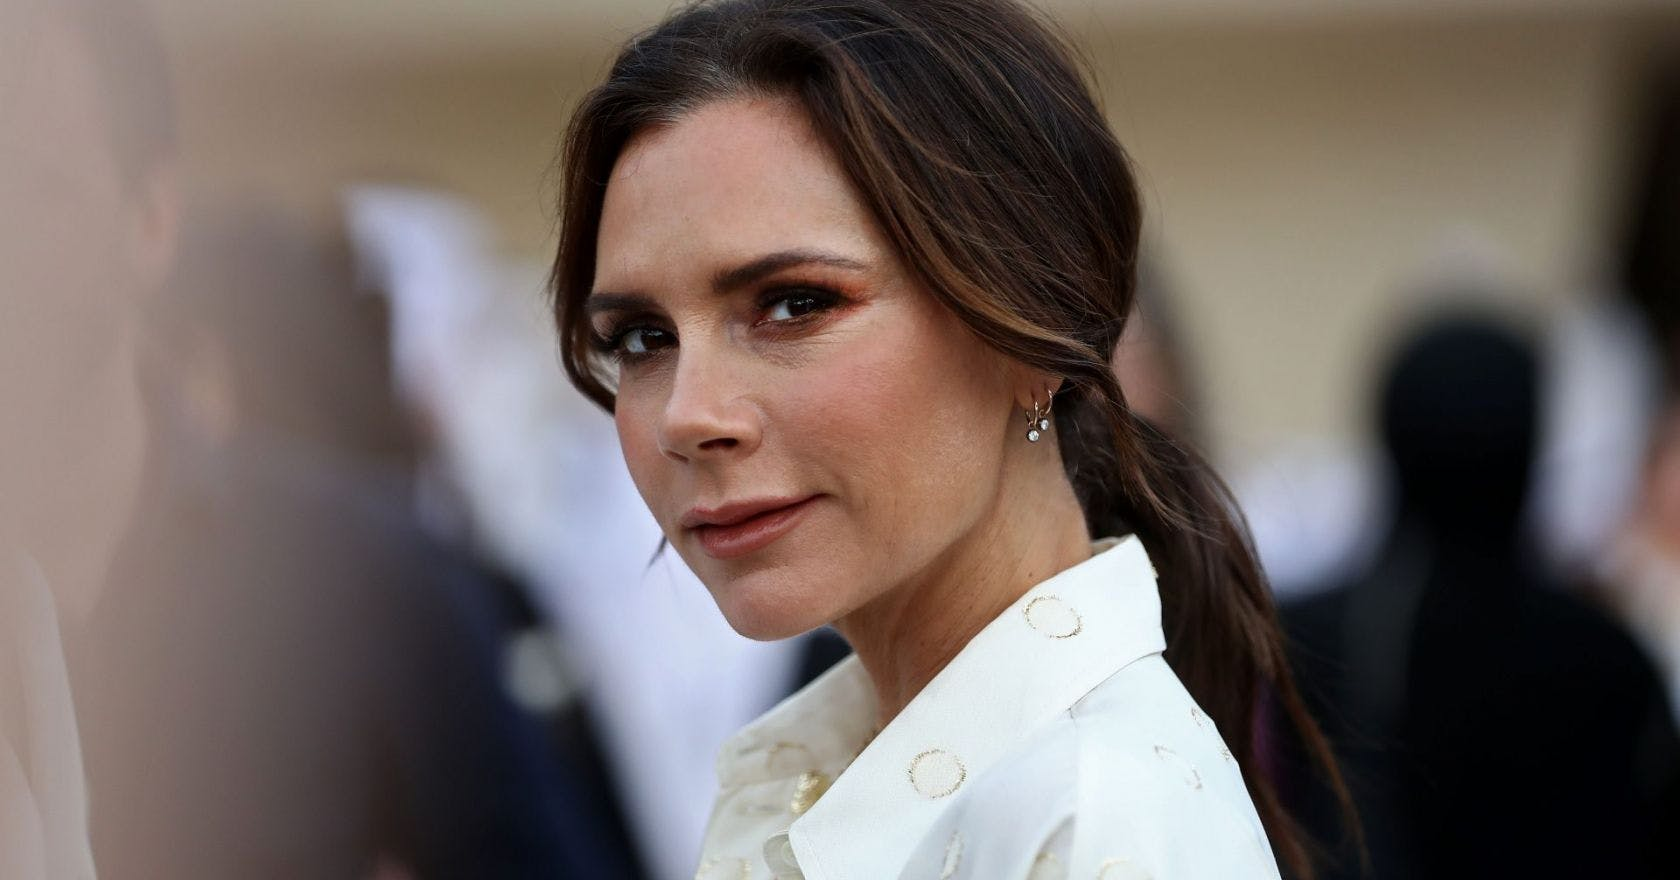 Victoria Beckham just wore one of this summer's biggest nail trends